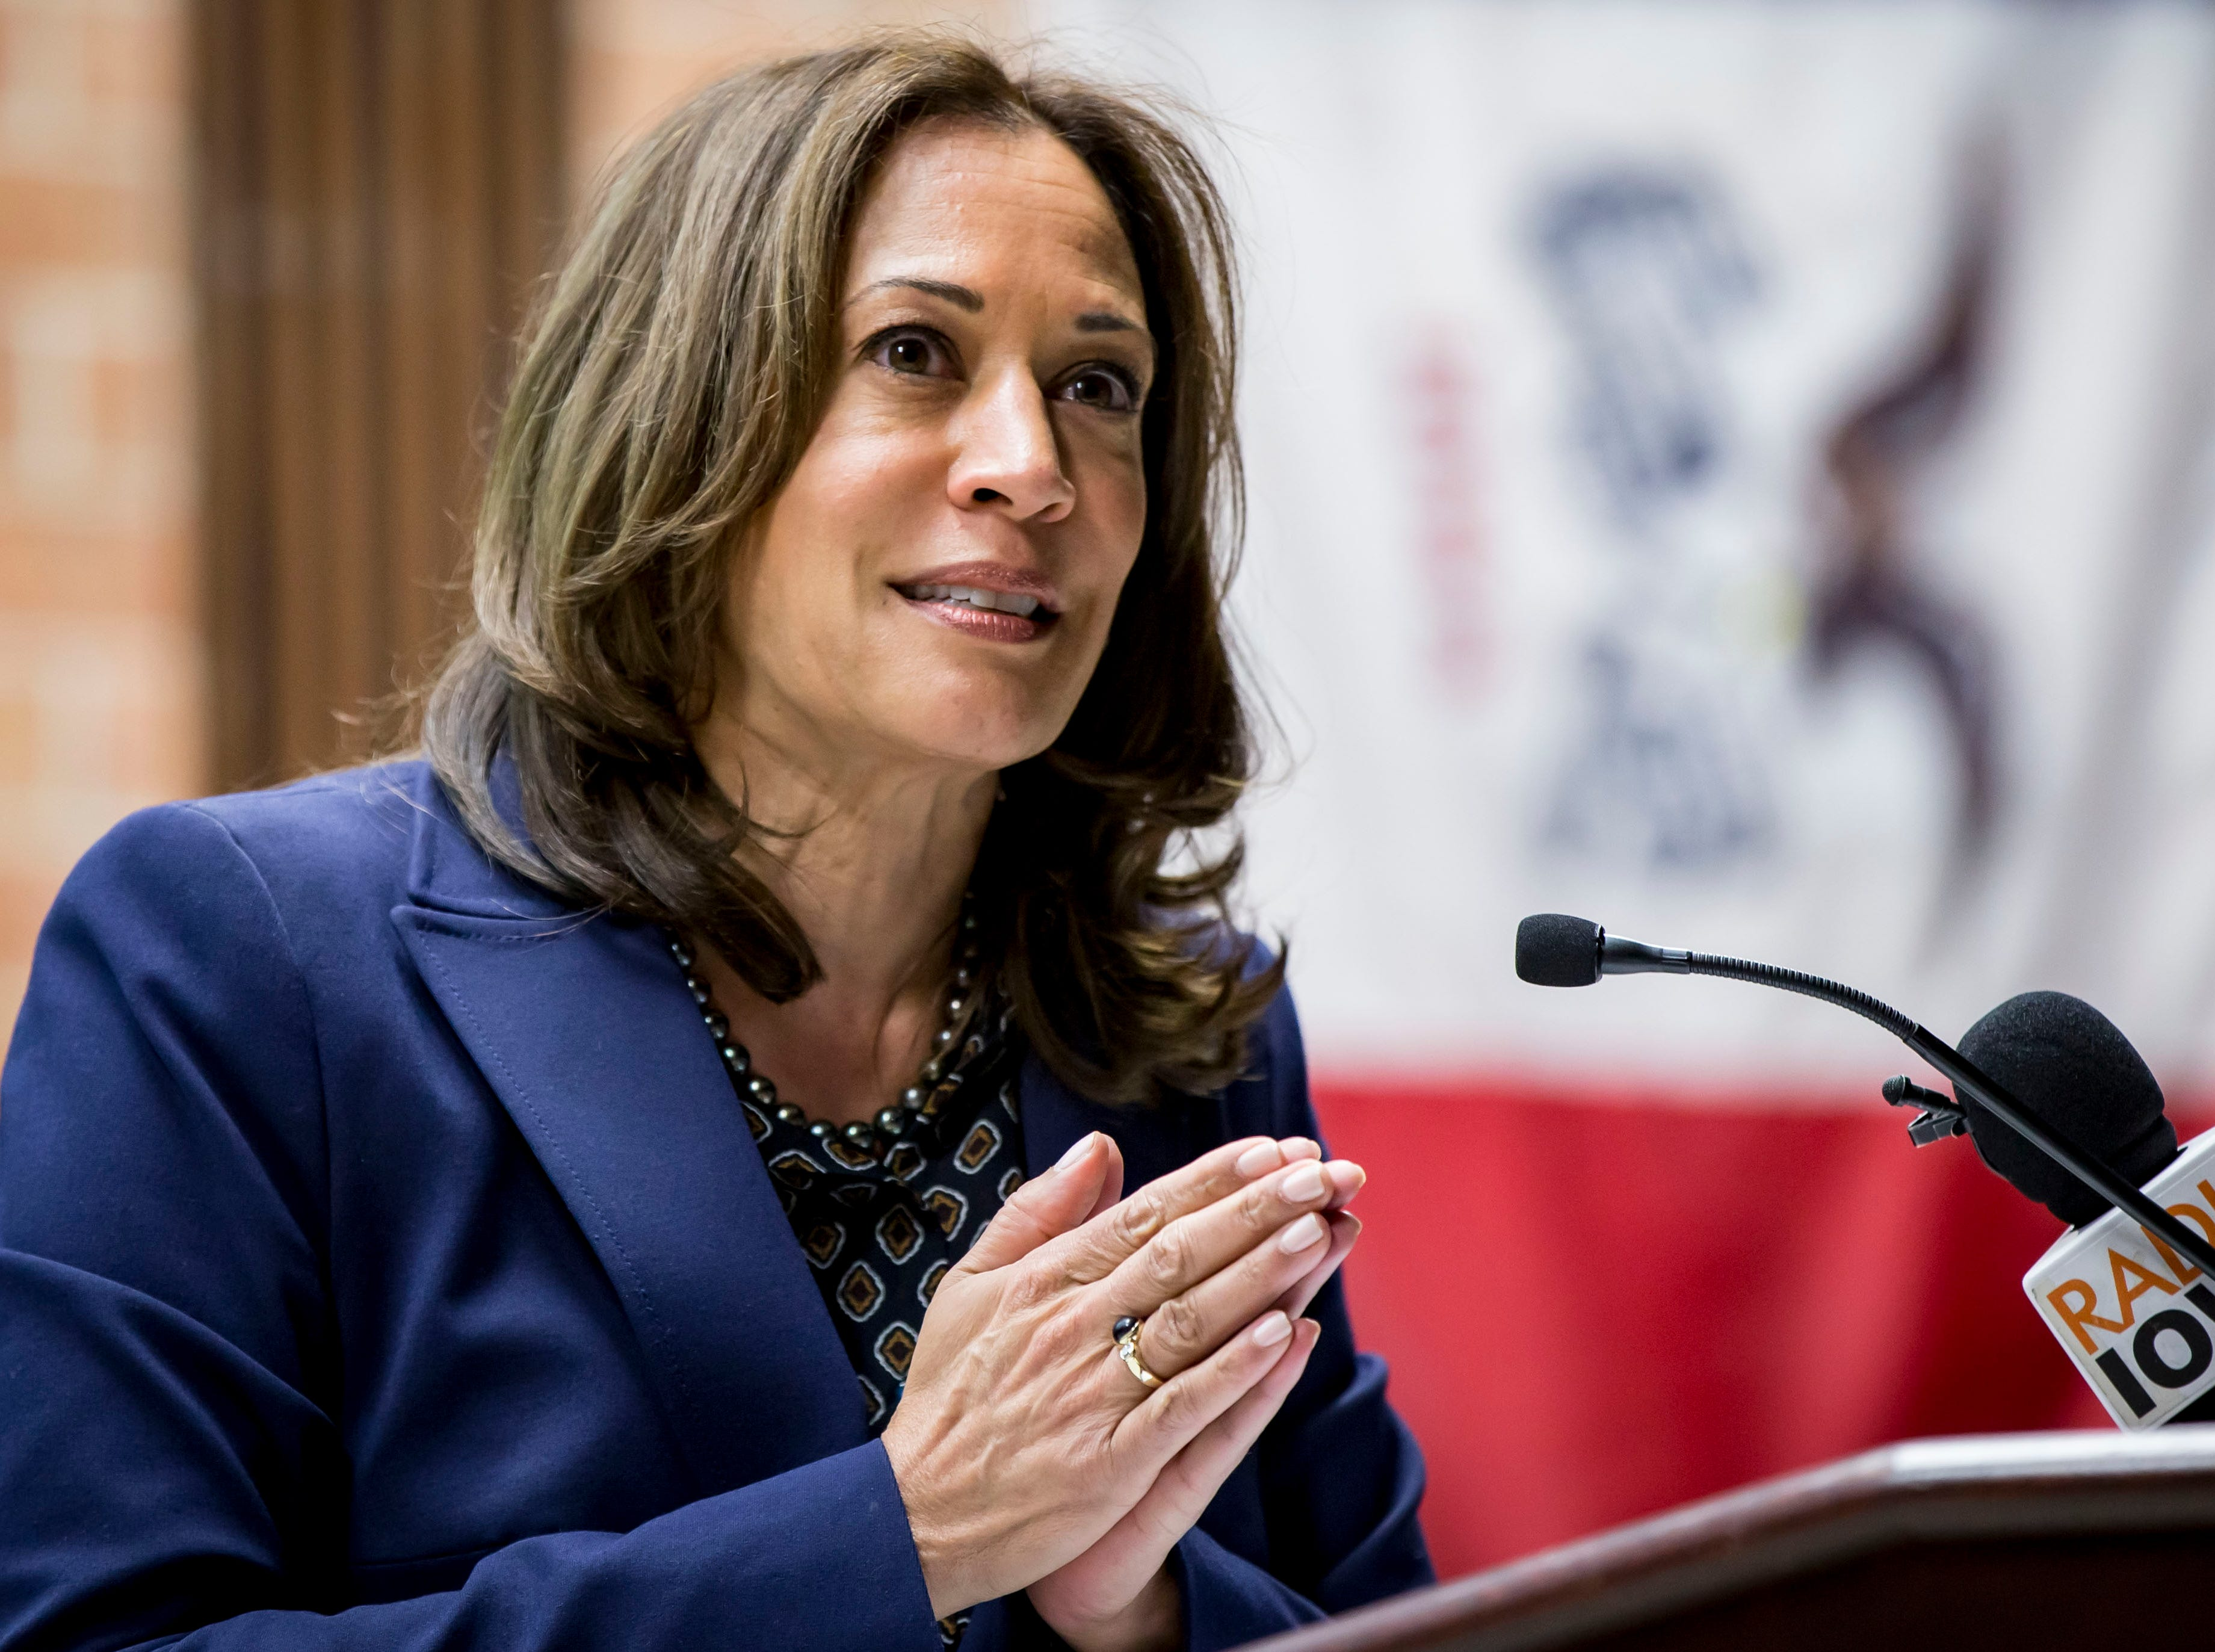 Democratic Senator Kamala Harris of California speaks during a DMACC Early Vote rally  Monday, Oct. 22, 2018, in Ankeny, Iowa. She appeared with Congressional candidate Cindy Axne, State Senate candidate Amber Gustafson and Iowa House candidate Heather Maston.